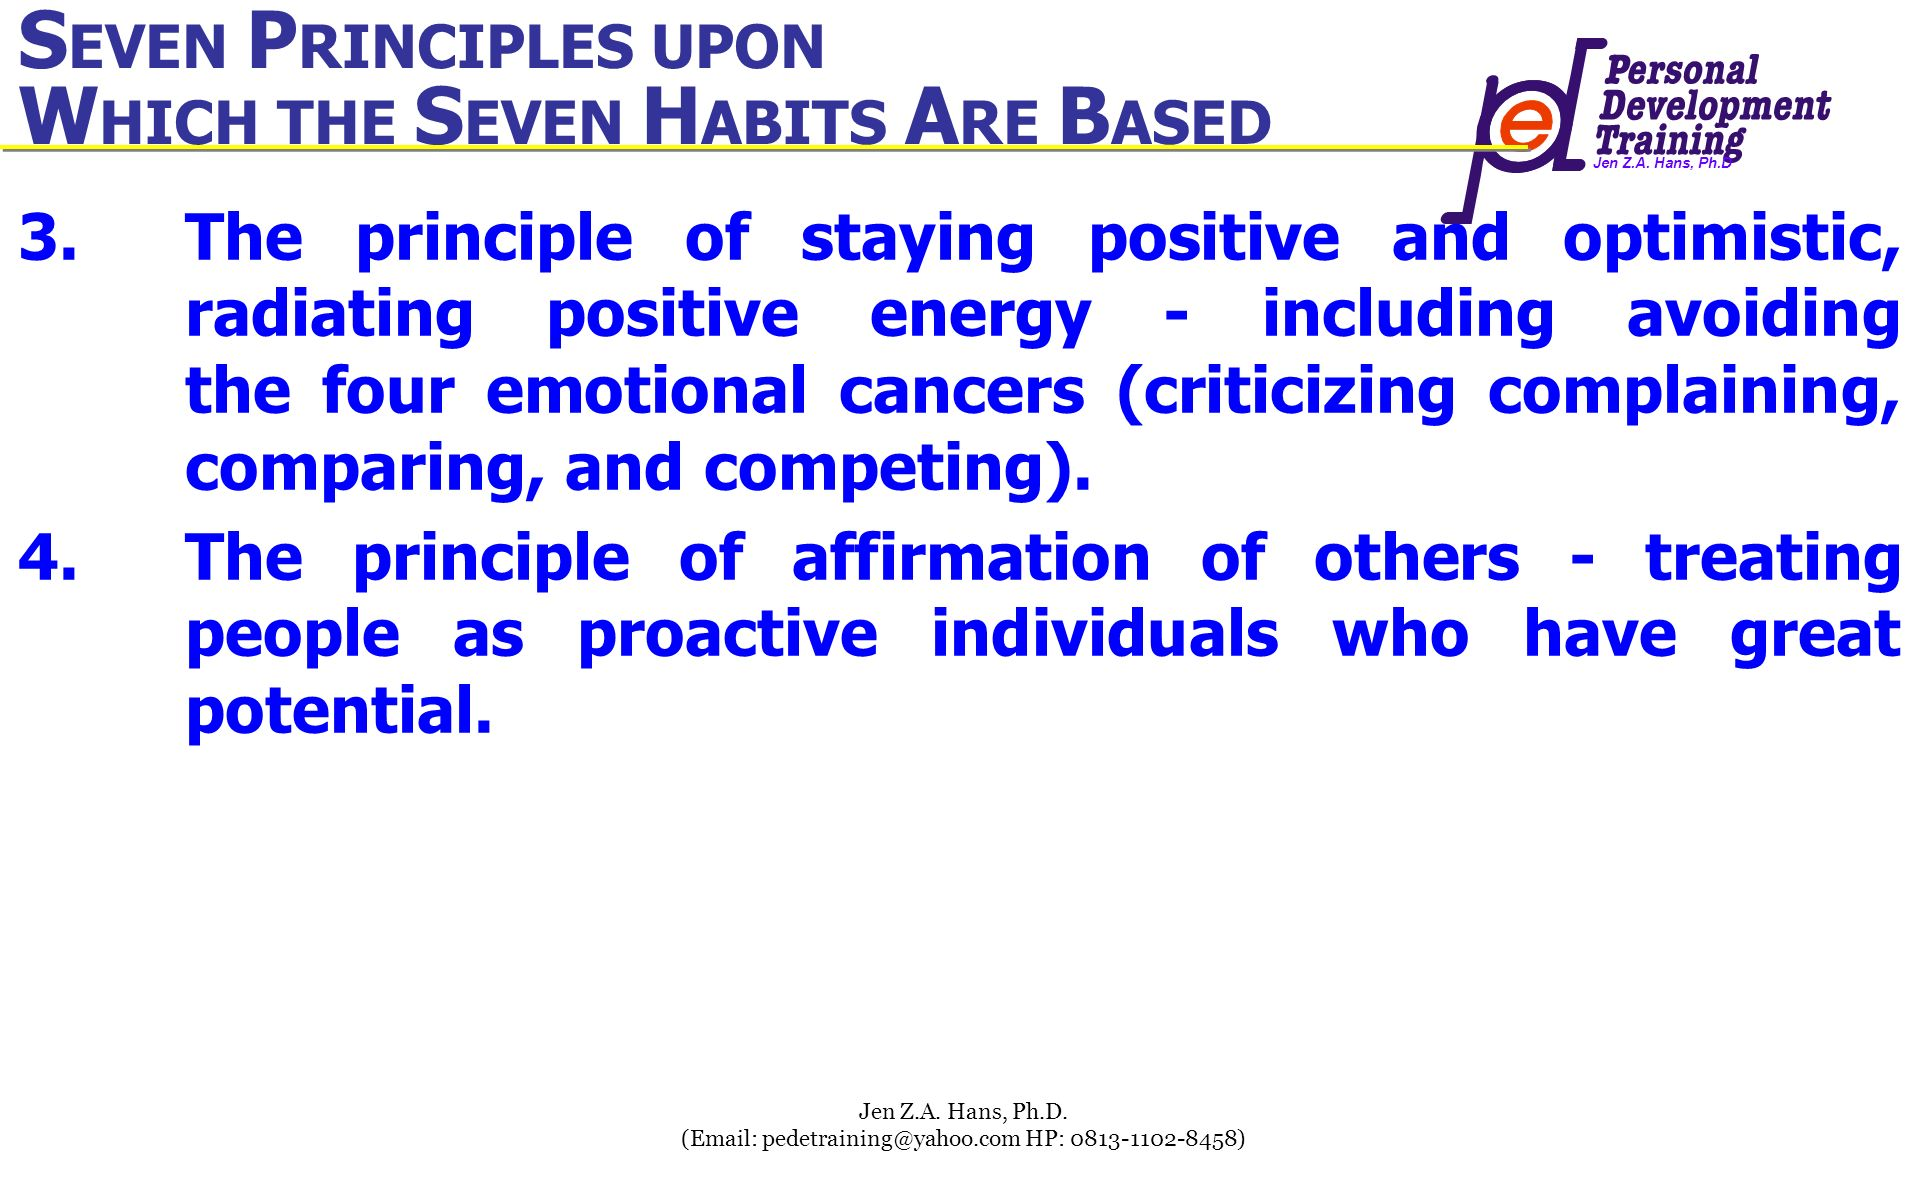 Jen Z.A. Hans, Ph.D Jen Z.A. Hans, Ph.D. (Email: pedetraining@yahoo.com HP: 0813-1102-8458) 3.The principle of staying positive and optimistic, radiat